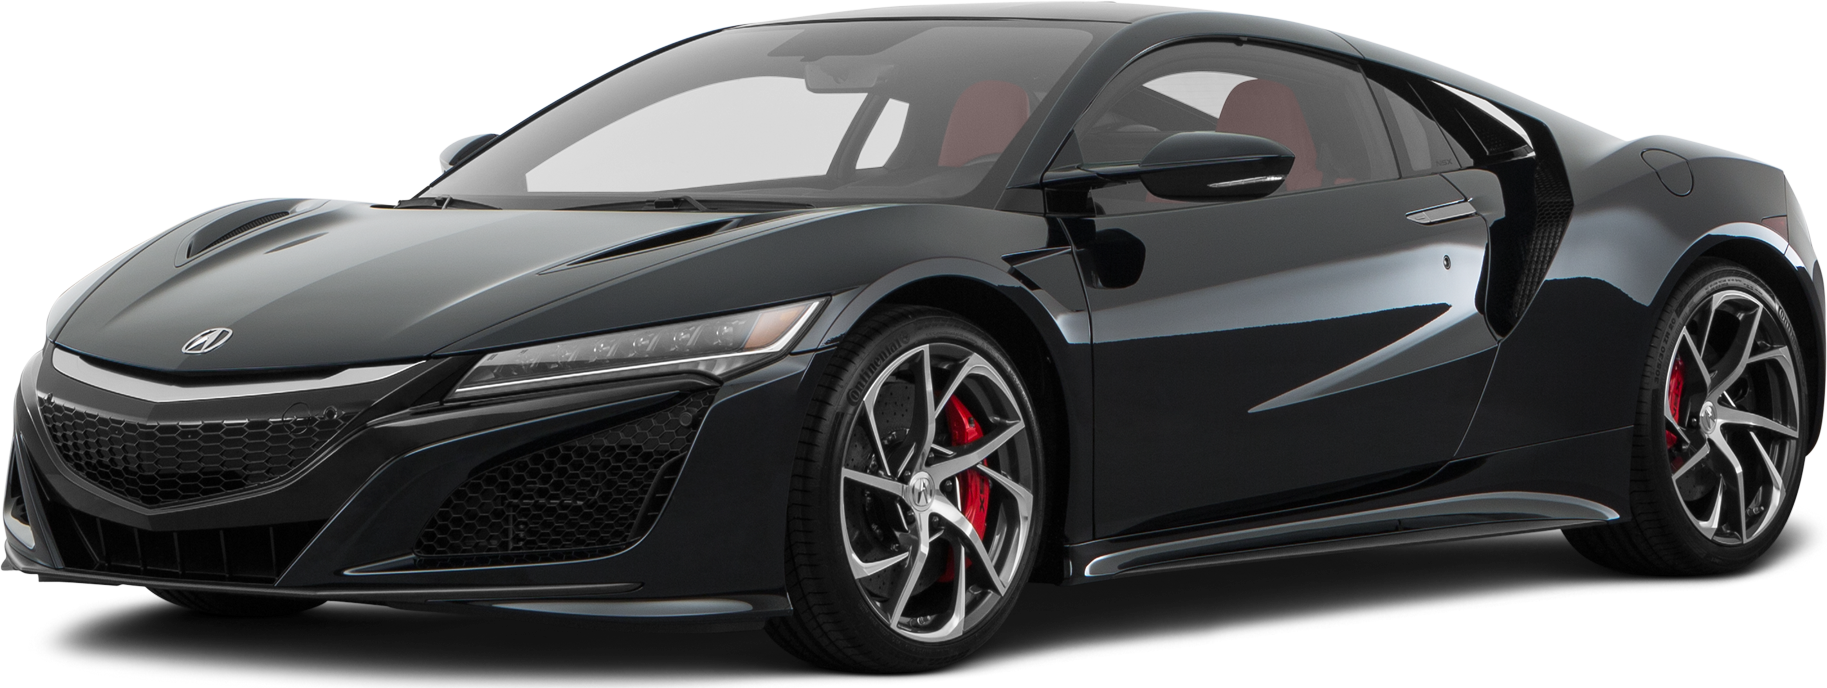 2019 Acura Nsx Values Cars For Sale Kelley Blue Book